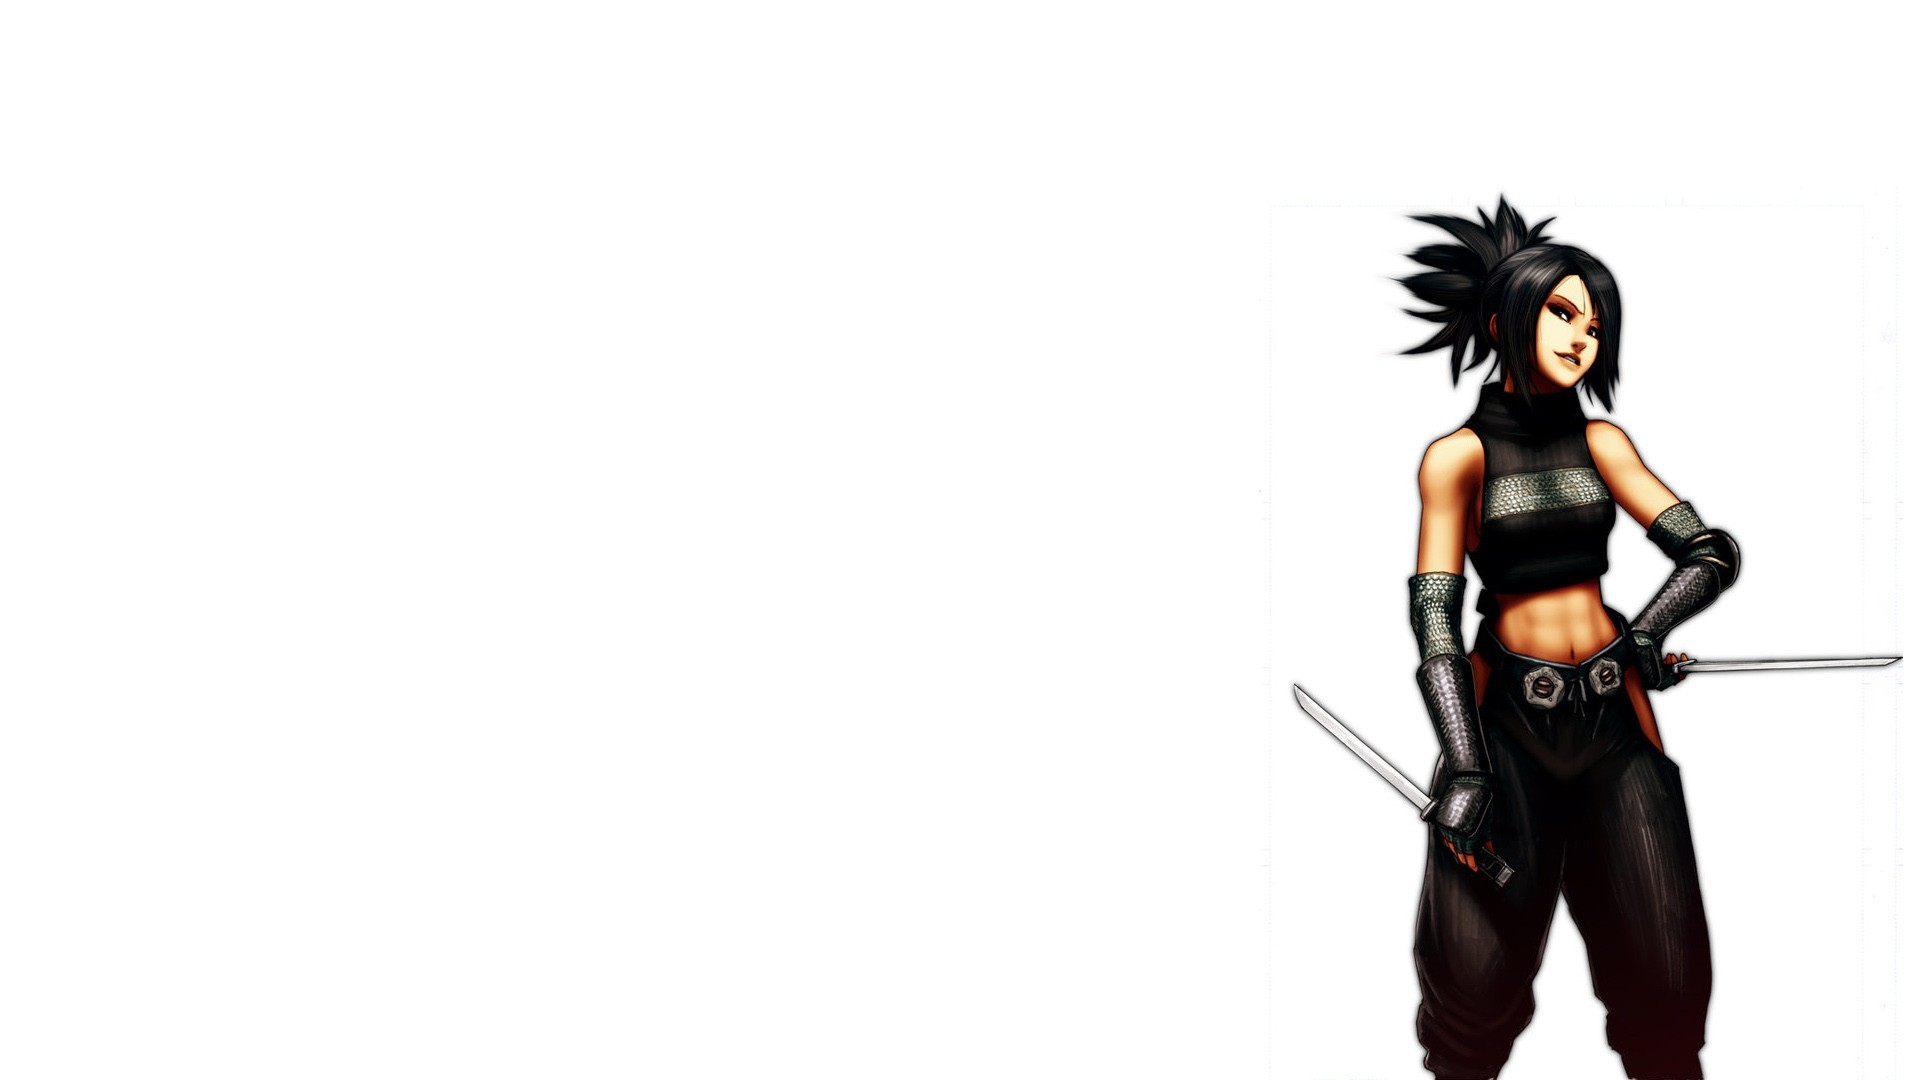 woman artwork tenchu Ayame HD Wallpaper